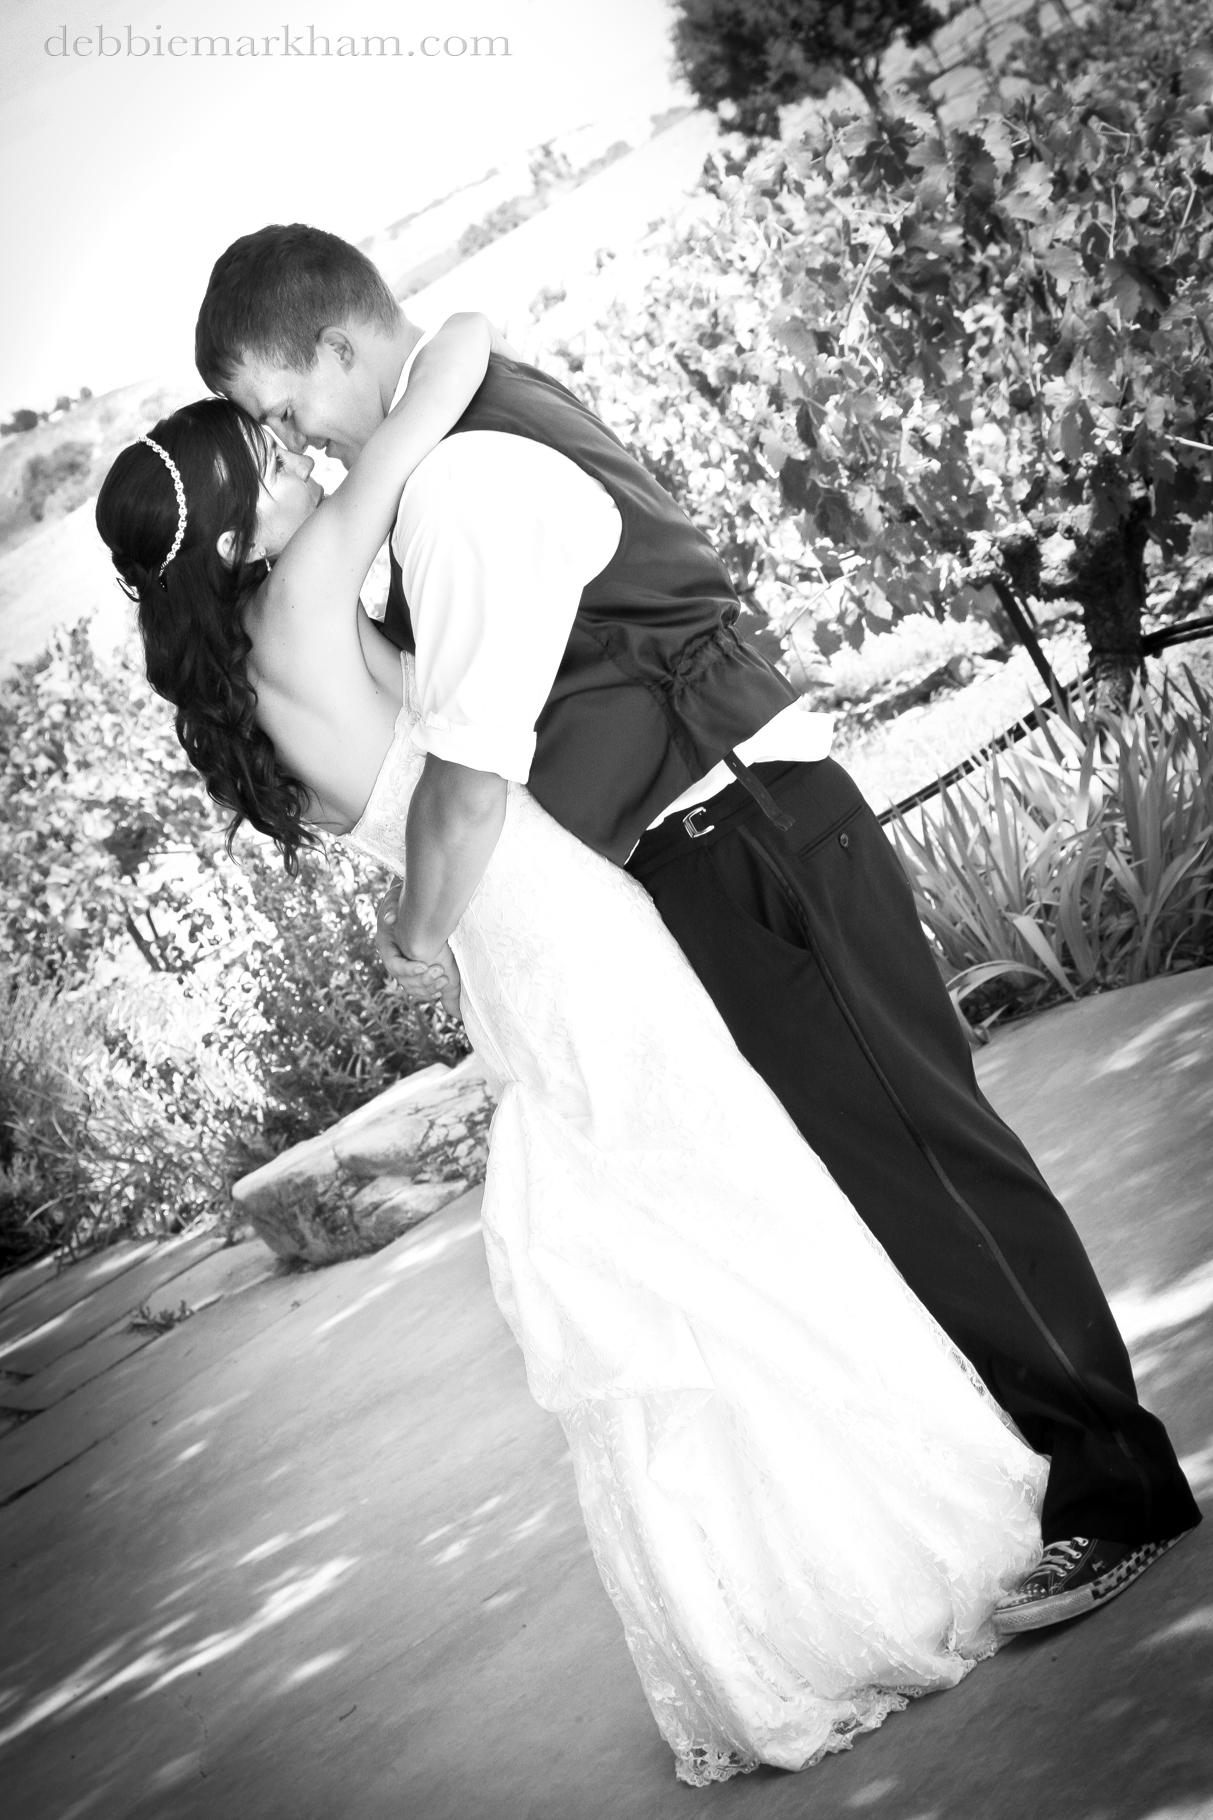 Cambria Photographer Debbie Markham-Paso Robles Wine Country Wedding at Castoro Winery-Bride and Groom Dancing Outdoor in Vineyard